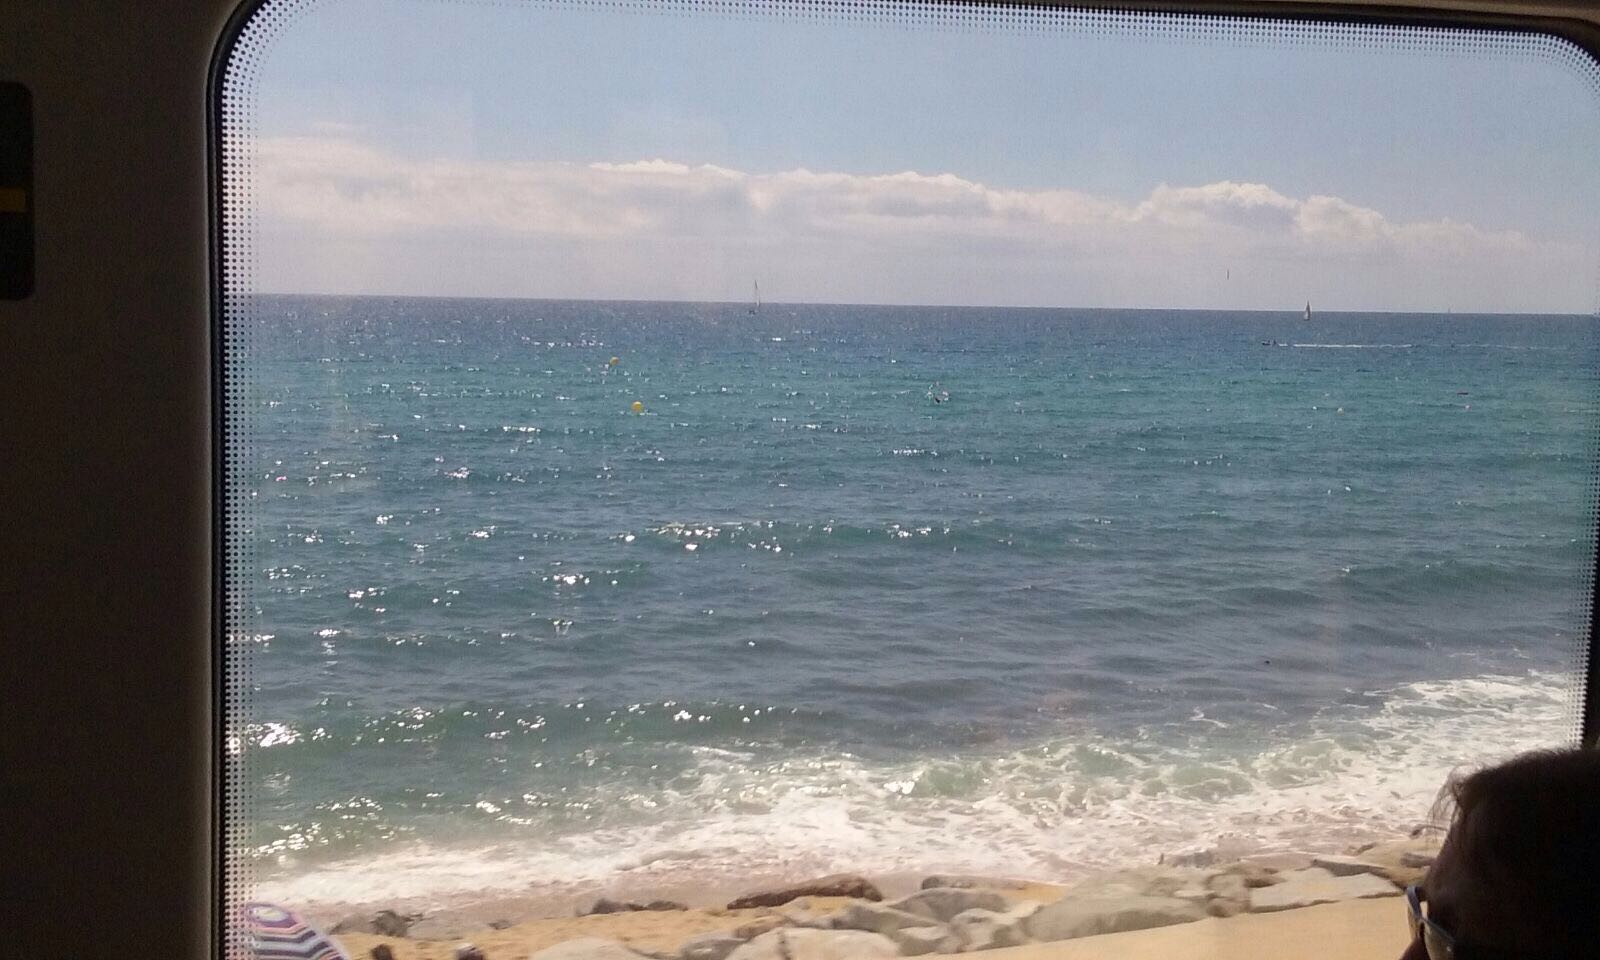 The sea through the train window